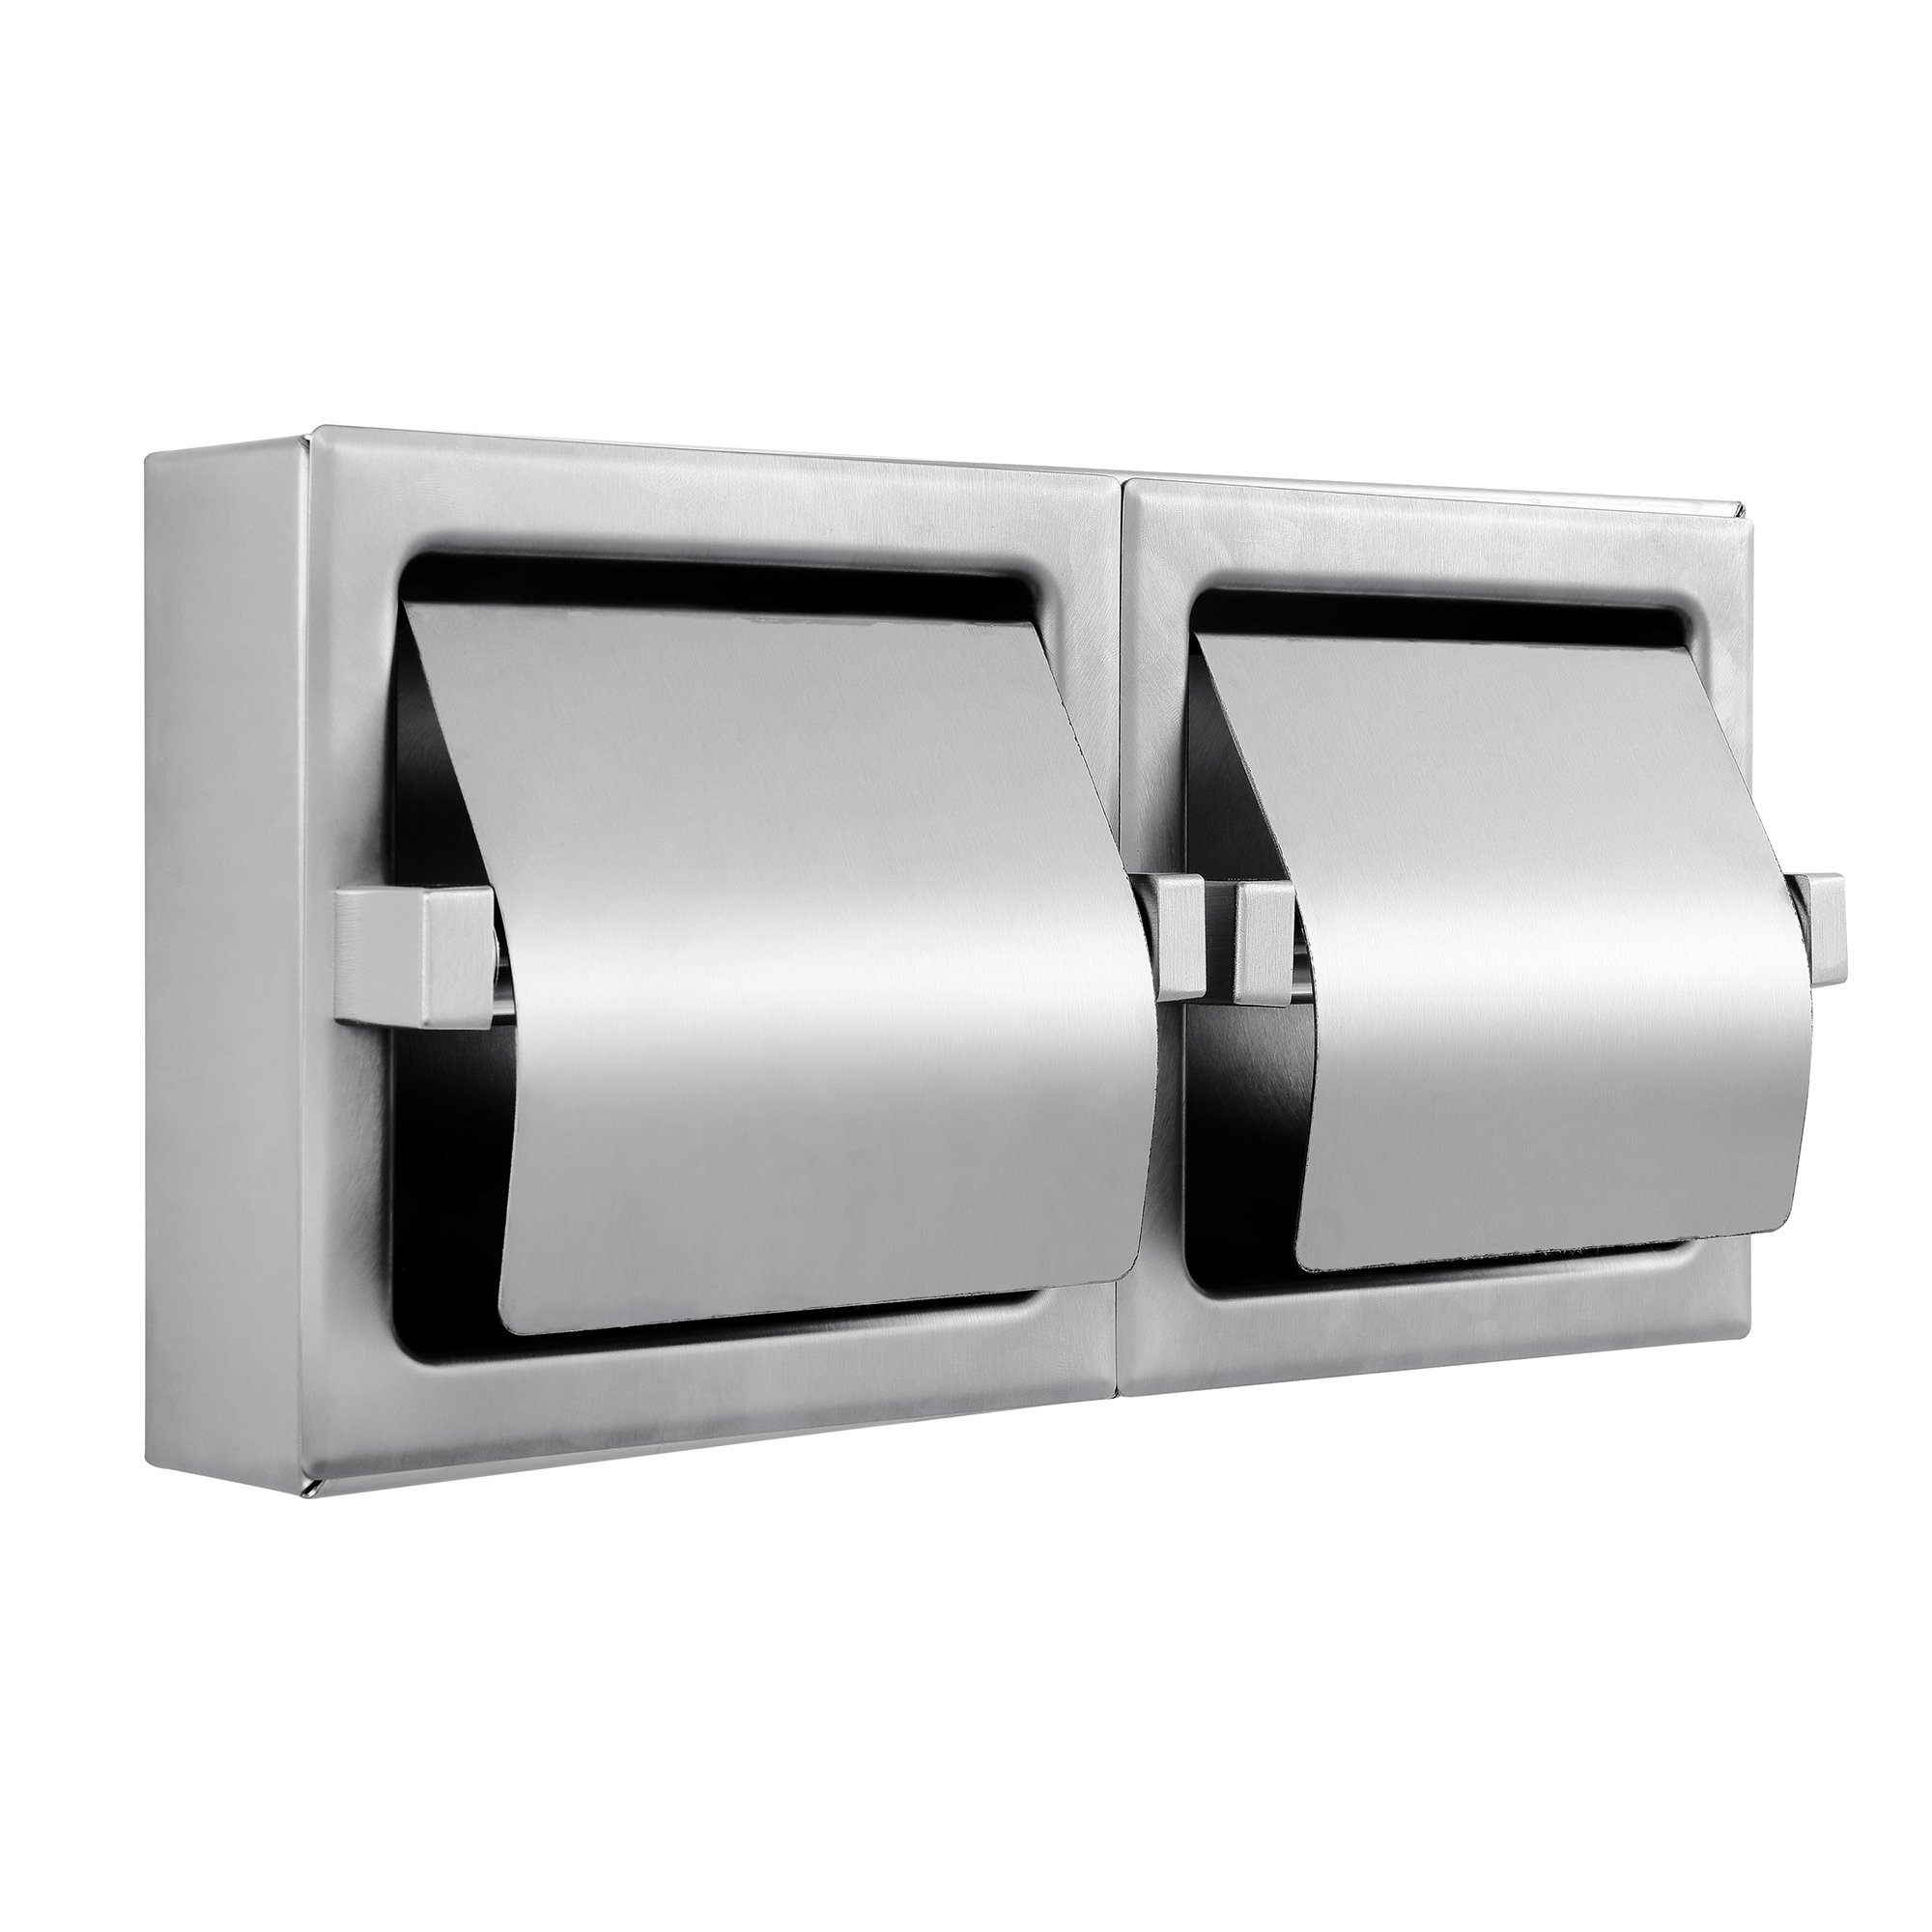 Dependable Direct Heavy Duty Horizontal Two Roll Hooded Commercial Toilet Paper Holder - Stainless Steel - Satin Finish - Surface Mount - Holder Dimensions: 12-3/8 Inch x 6-1/2 Inch x 3 Inch by Dependable Direct